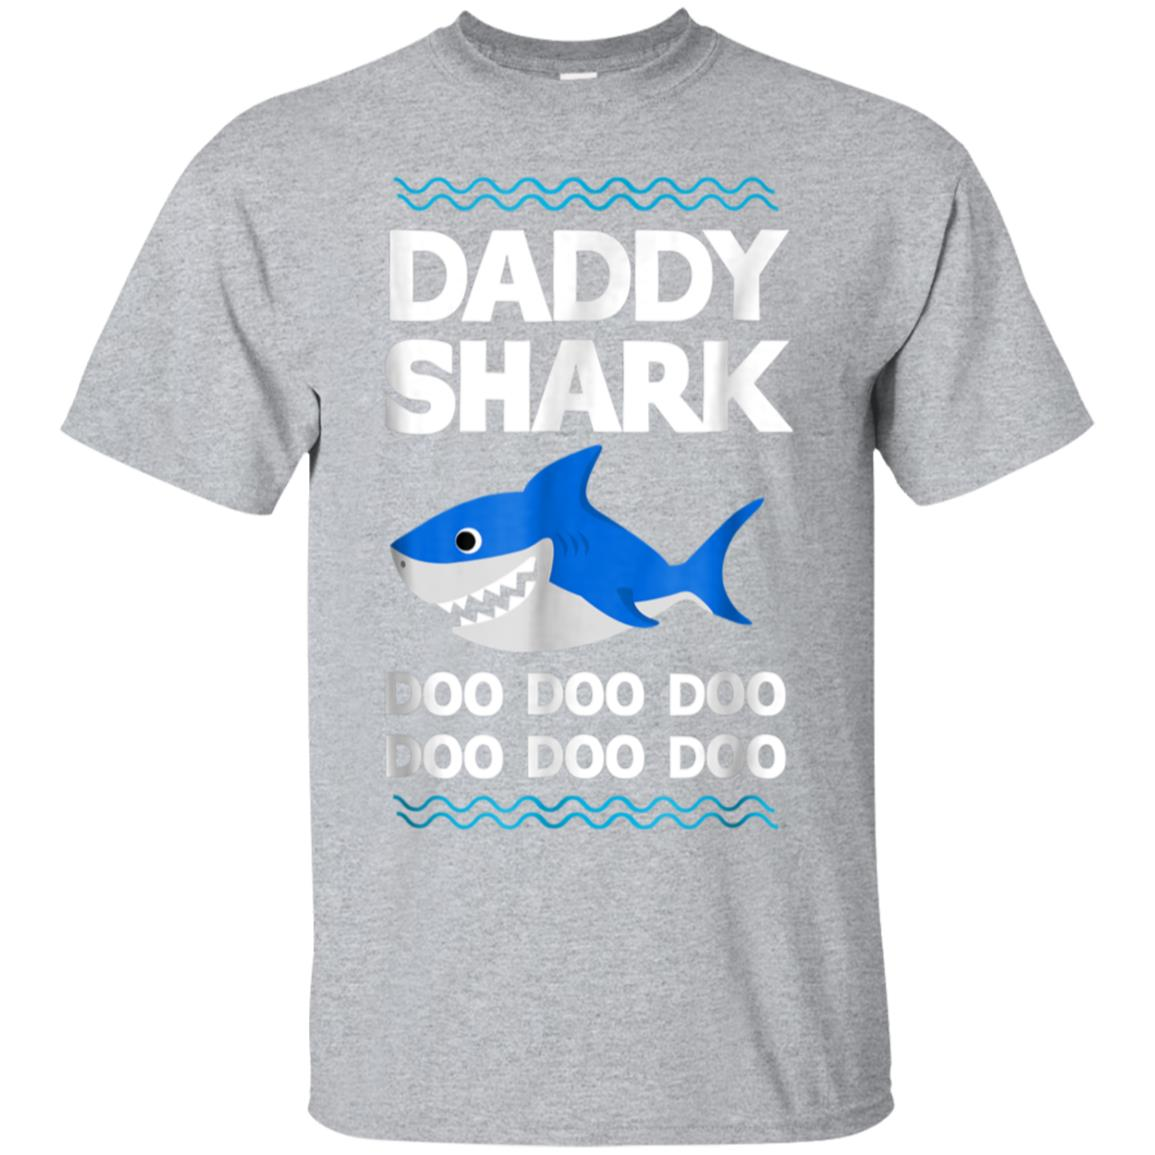 Daddy Shark T-Shirt Doo Doo Funny Baby Mommy Kids Video Tee 99promocode